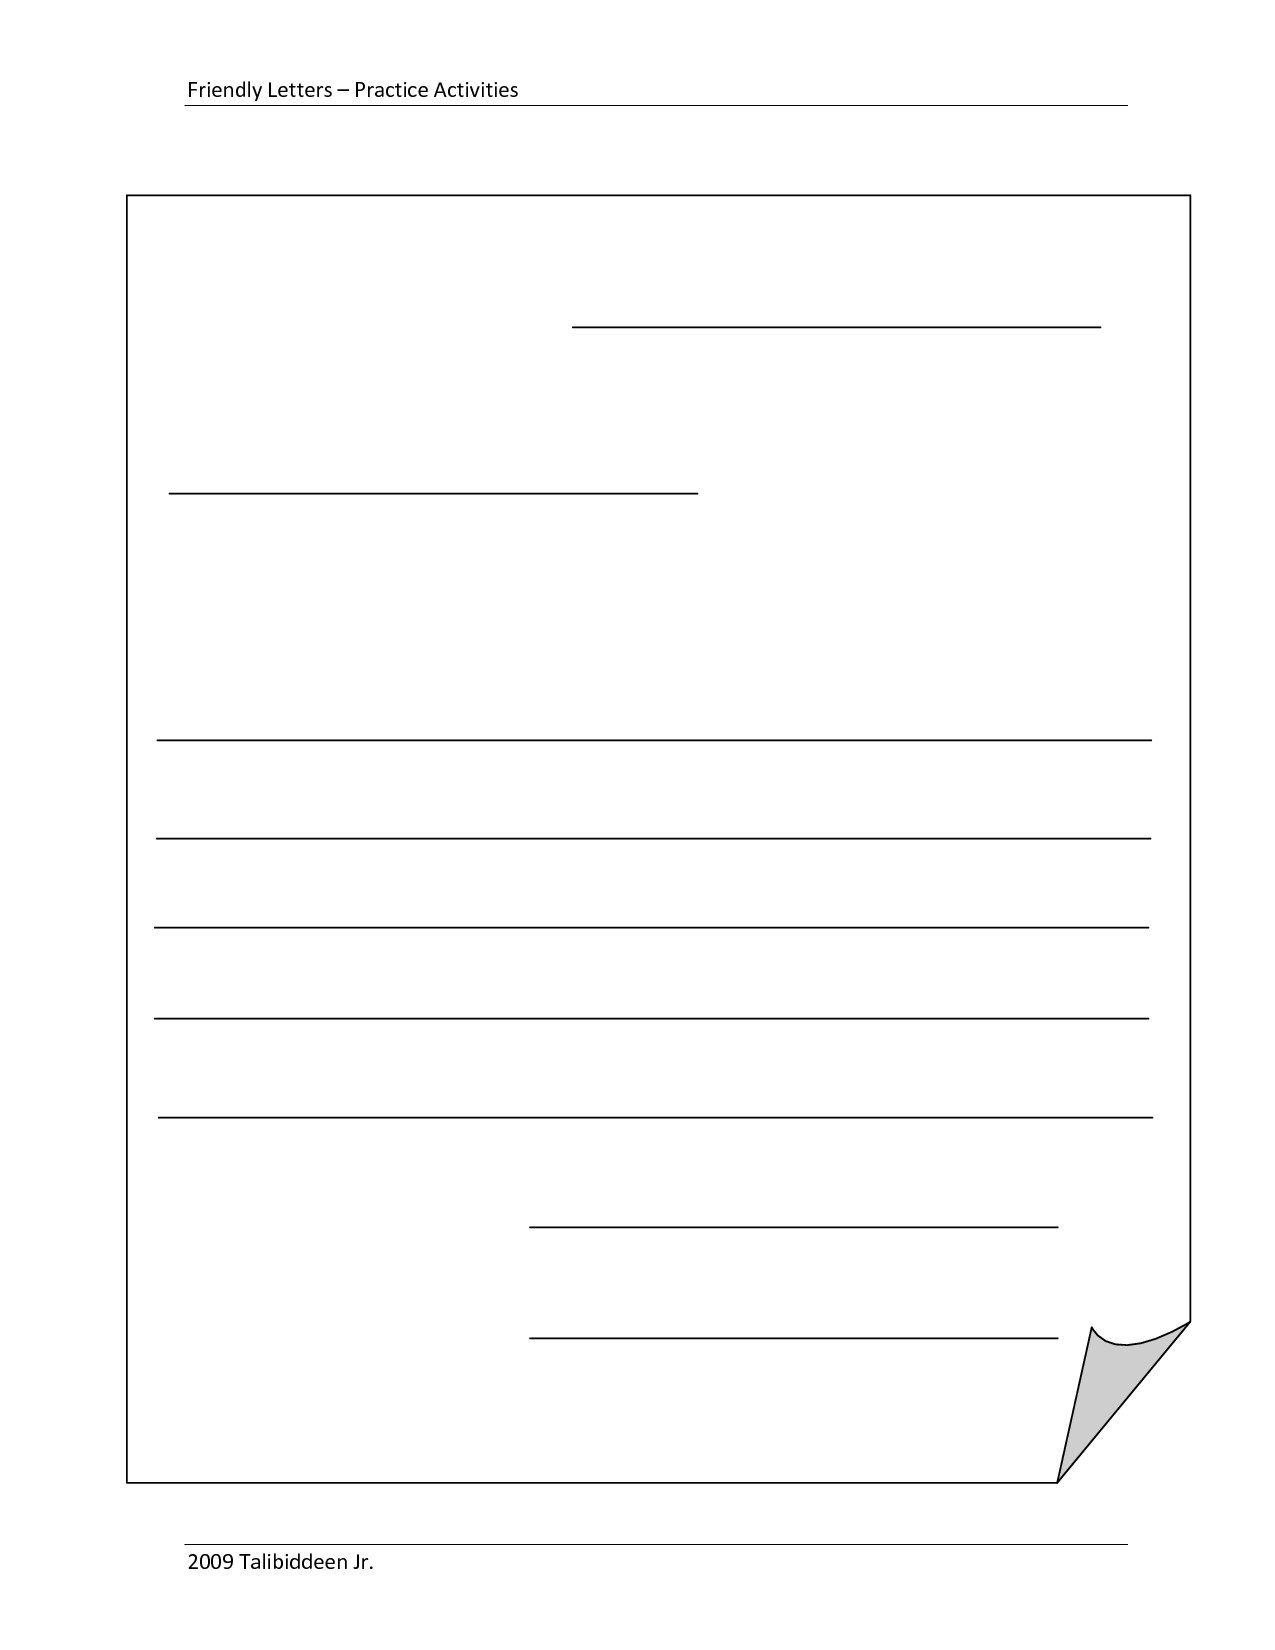 Blank letter template for kids blank template friendly letter blank letter template for kids blank template friendly letter friendly letters practice spiritdancerdesigns Image collections